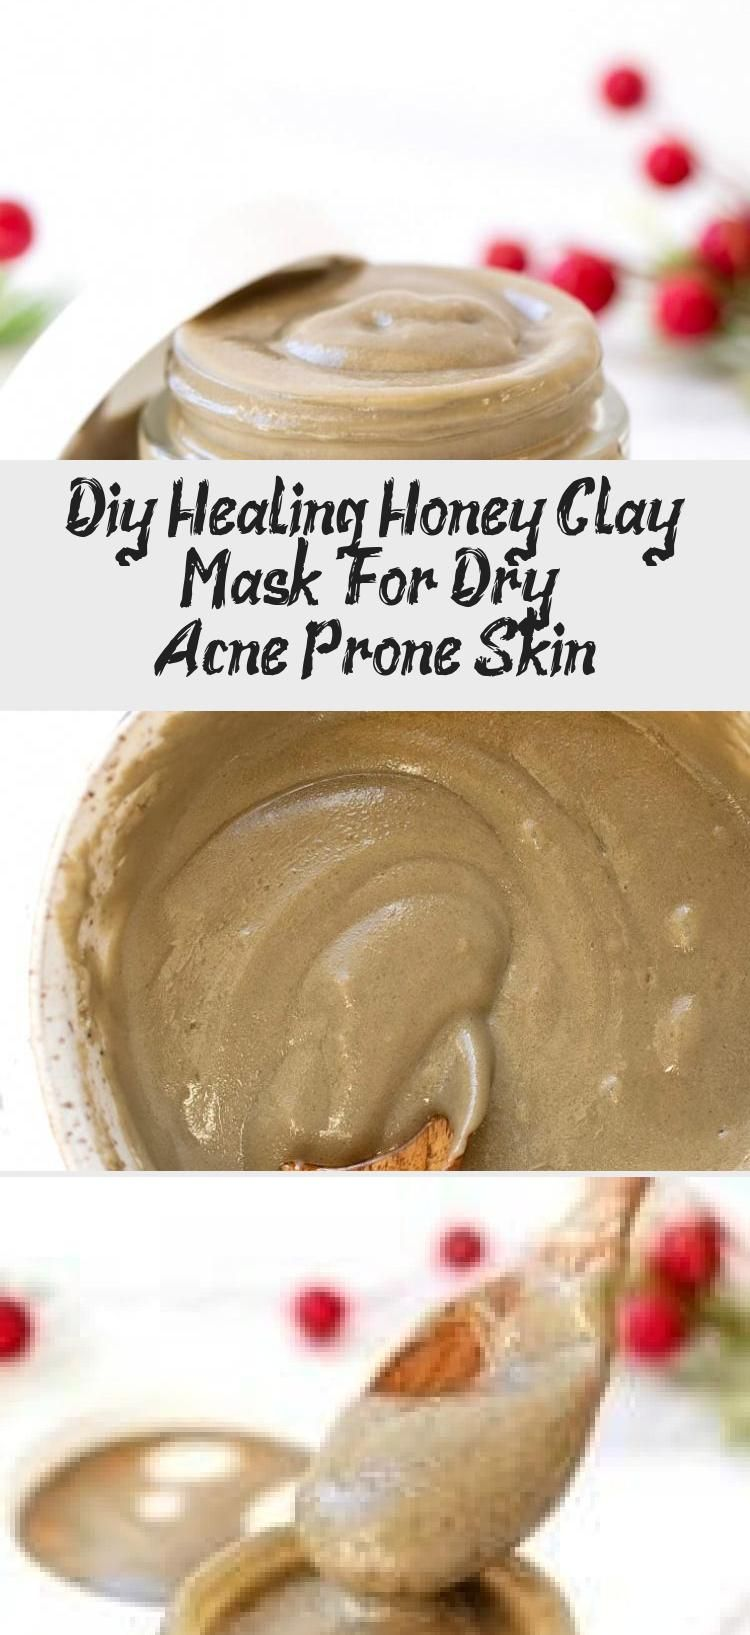 Diy Healing Honey Clay Mask  For Dry